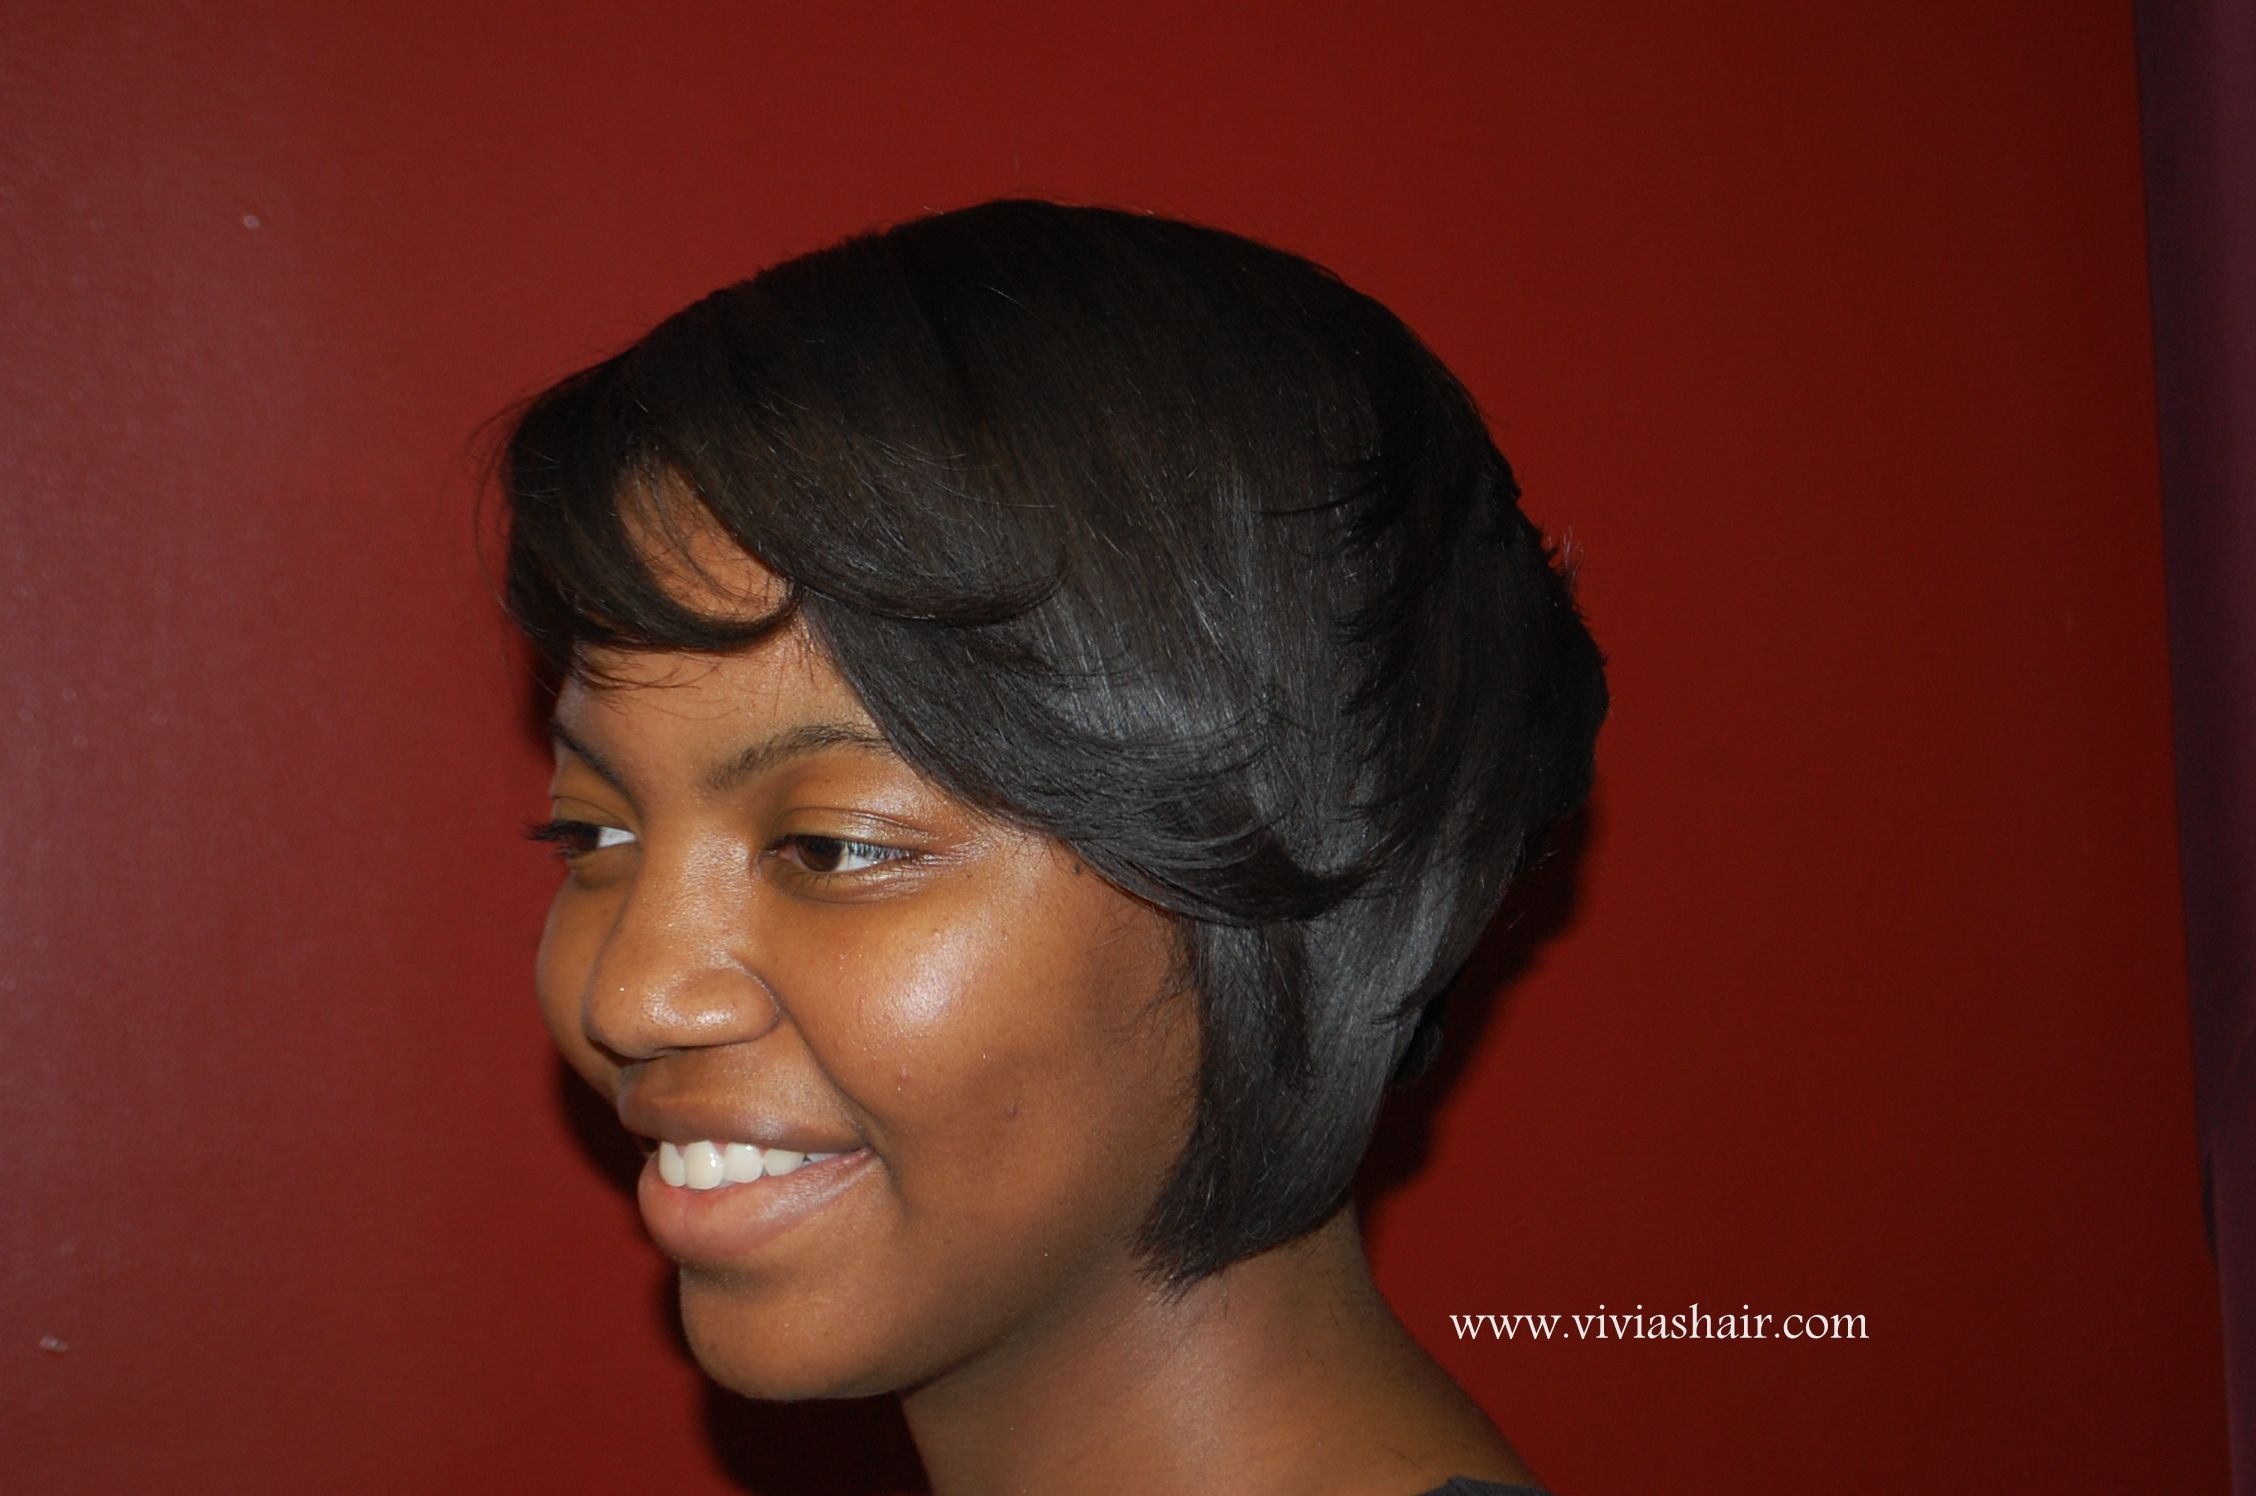 Hair Styles For African American Women Hair Salon Woodbridge Va Hair Salon Dc Hair Weave Salon Dc Hair Hair Styles Natural Hair Salons Natural Hair Styles